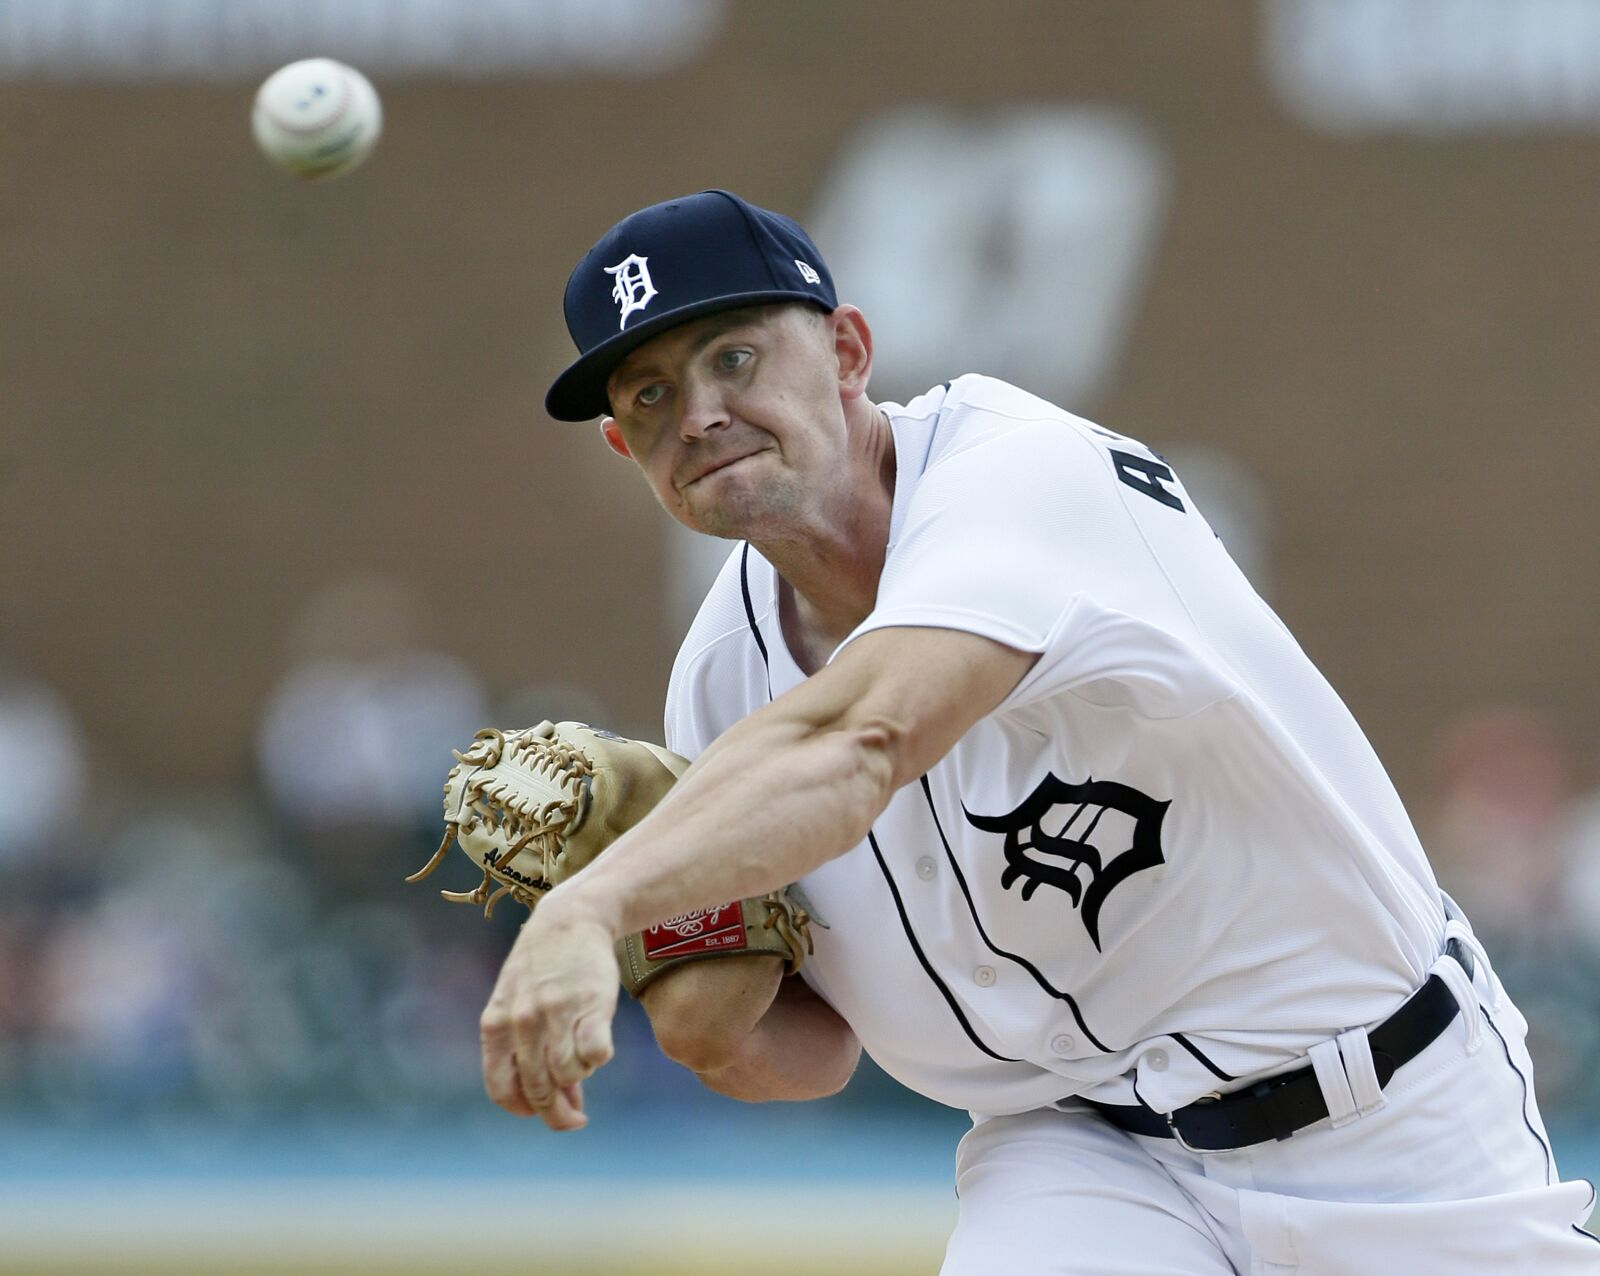 Detroit Tigers: Wave of young starting pitching has already arrived in Motown